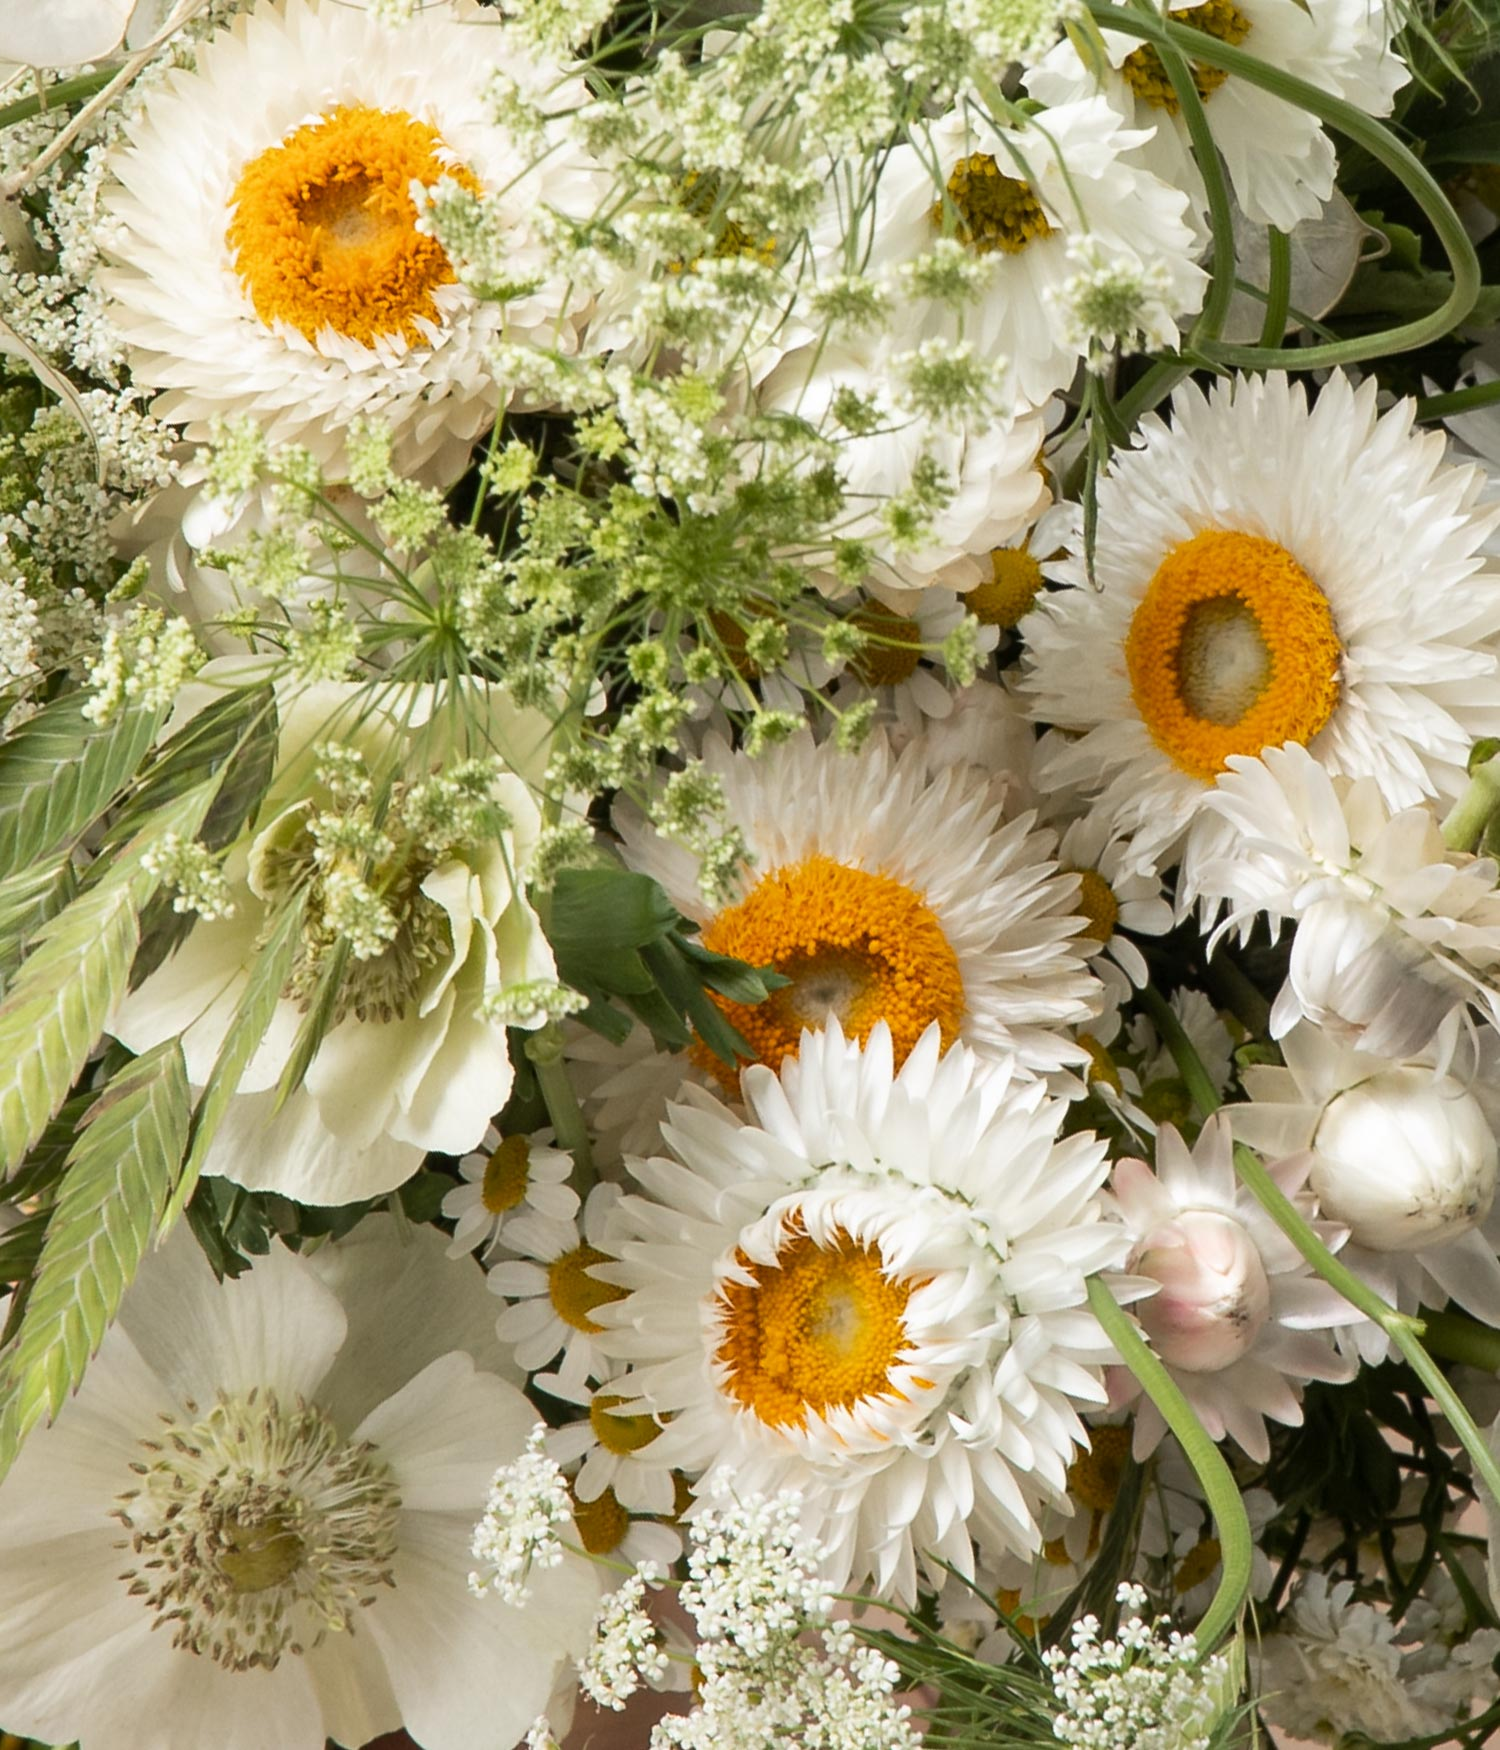 Detail of Chantilly anemone flower bouquet by flannel flowers